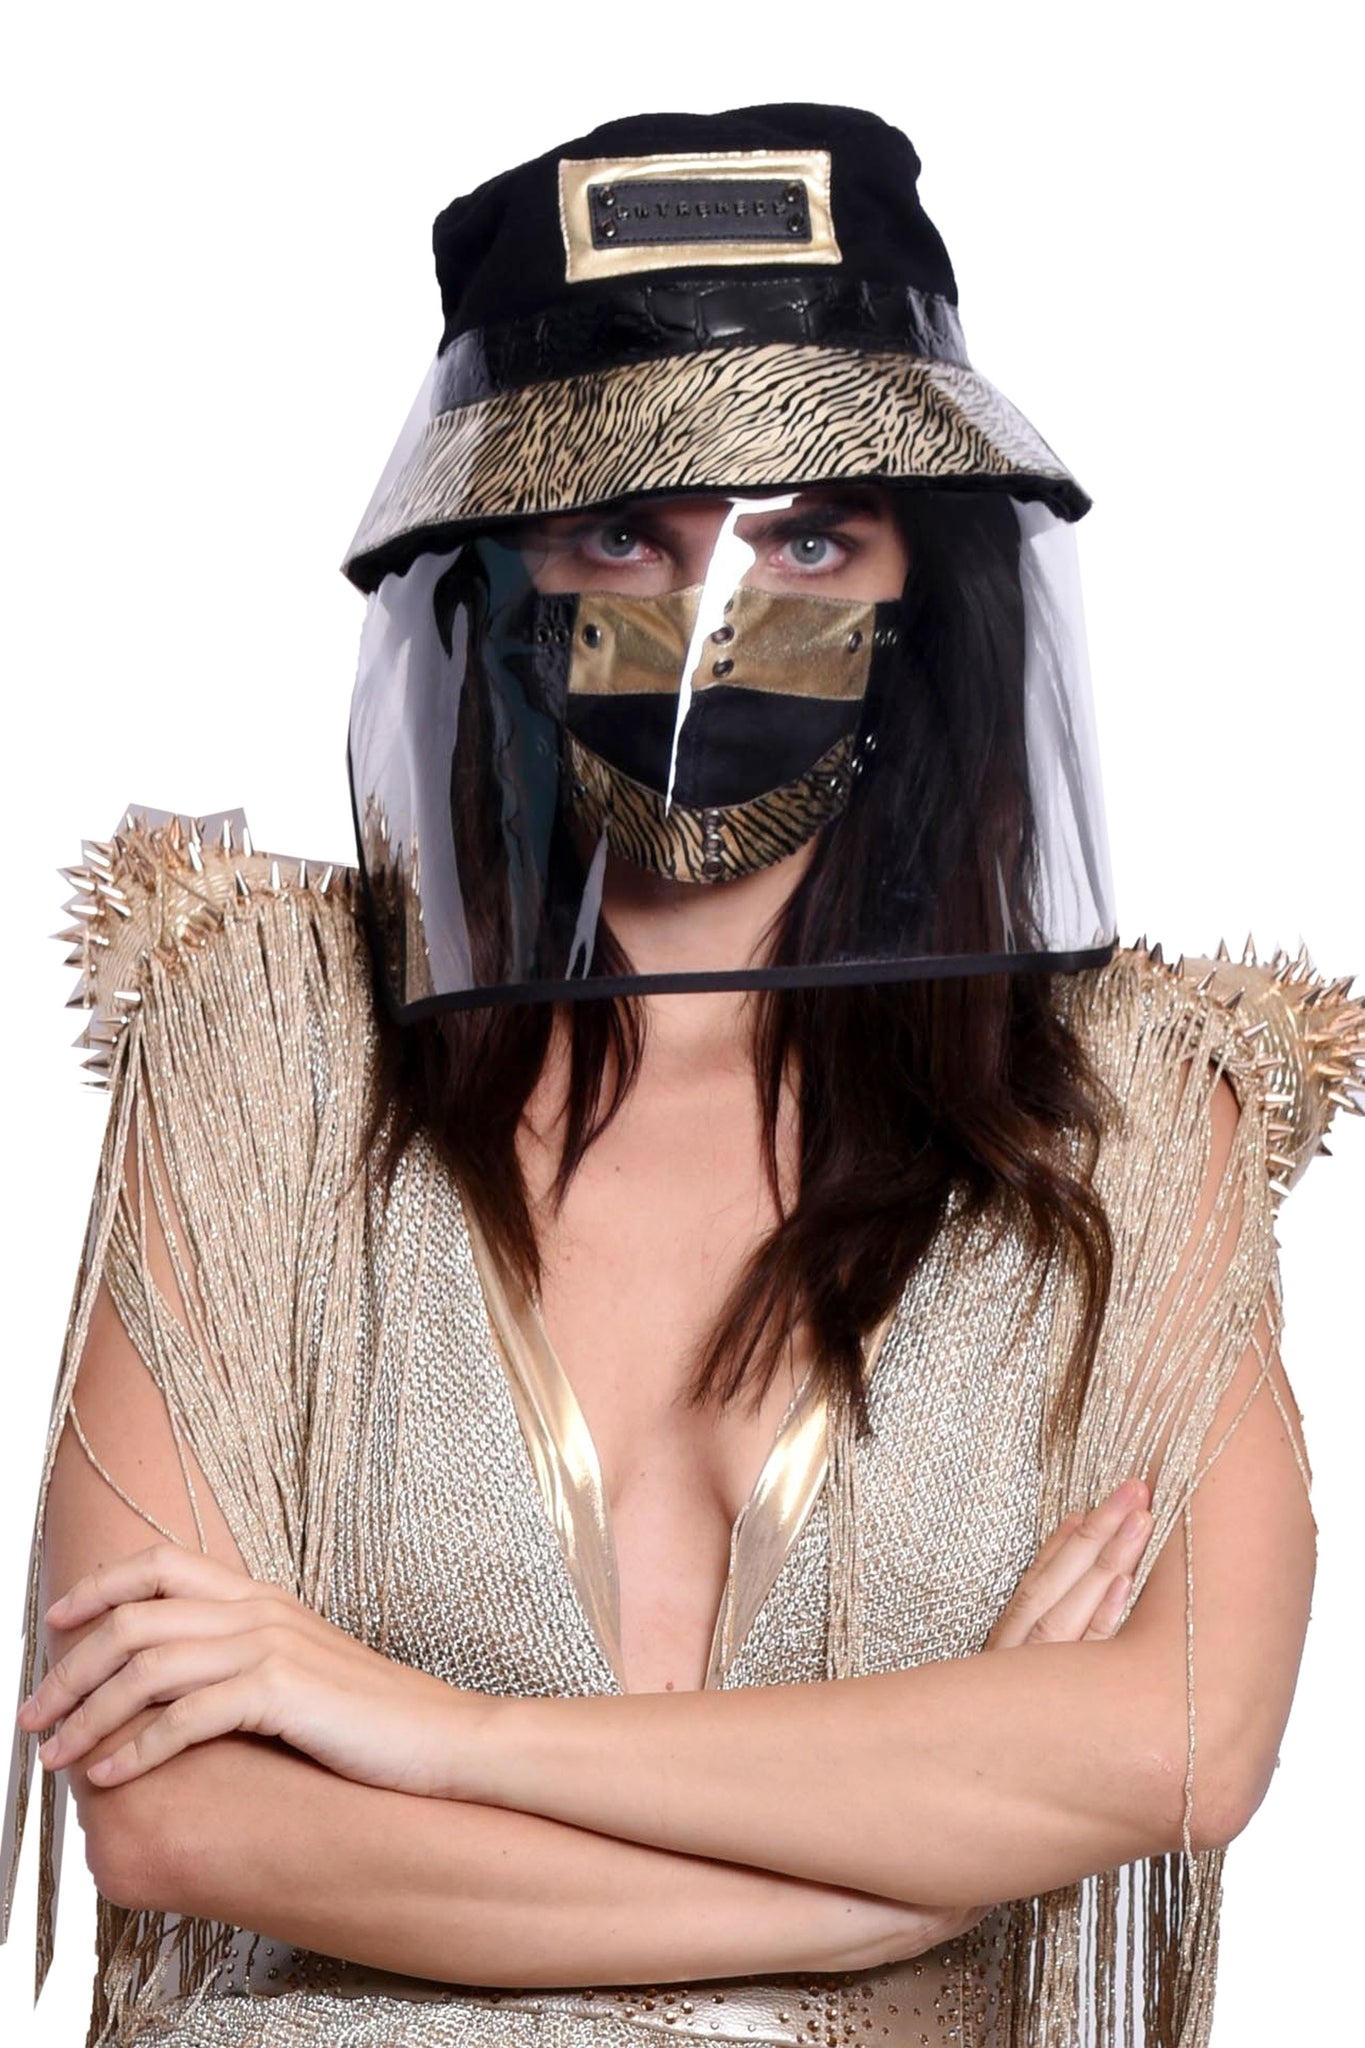 VIR Women Hat & Mask Fashion Accessory #016